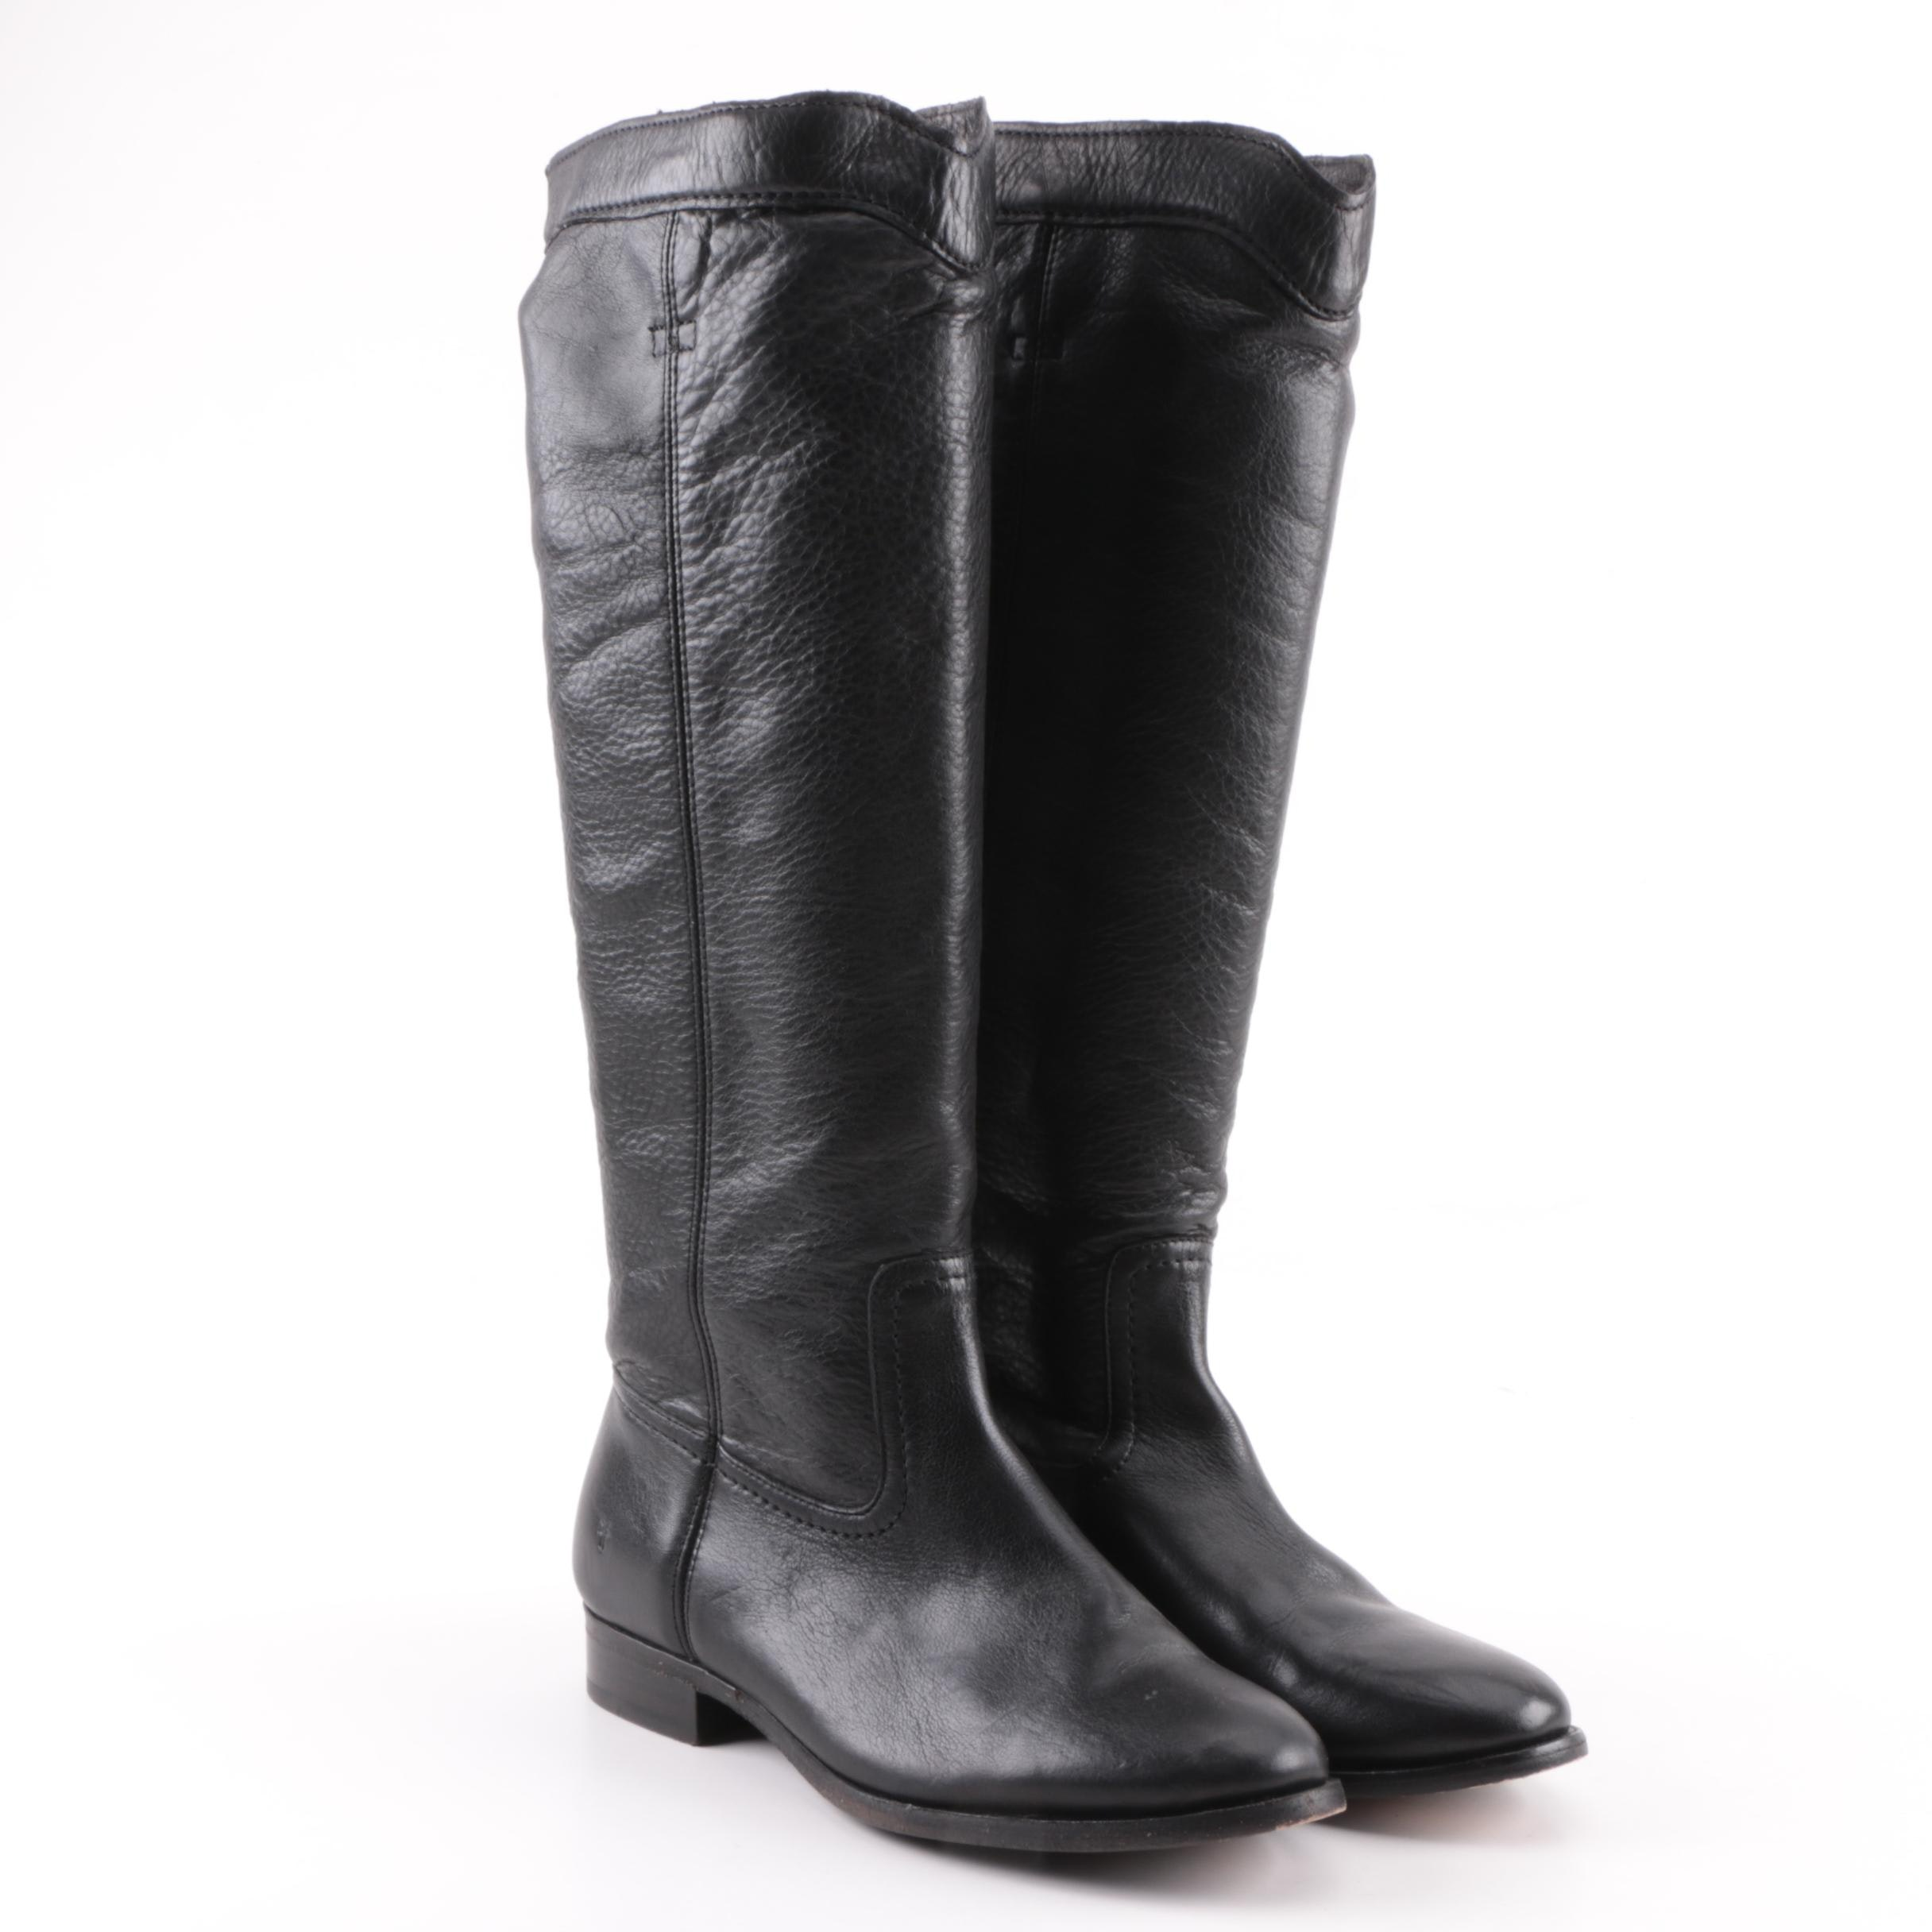 Women's Frye Cara Roper Black Leather Tall Boots